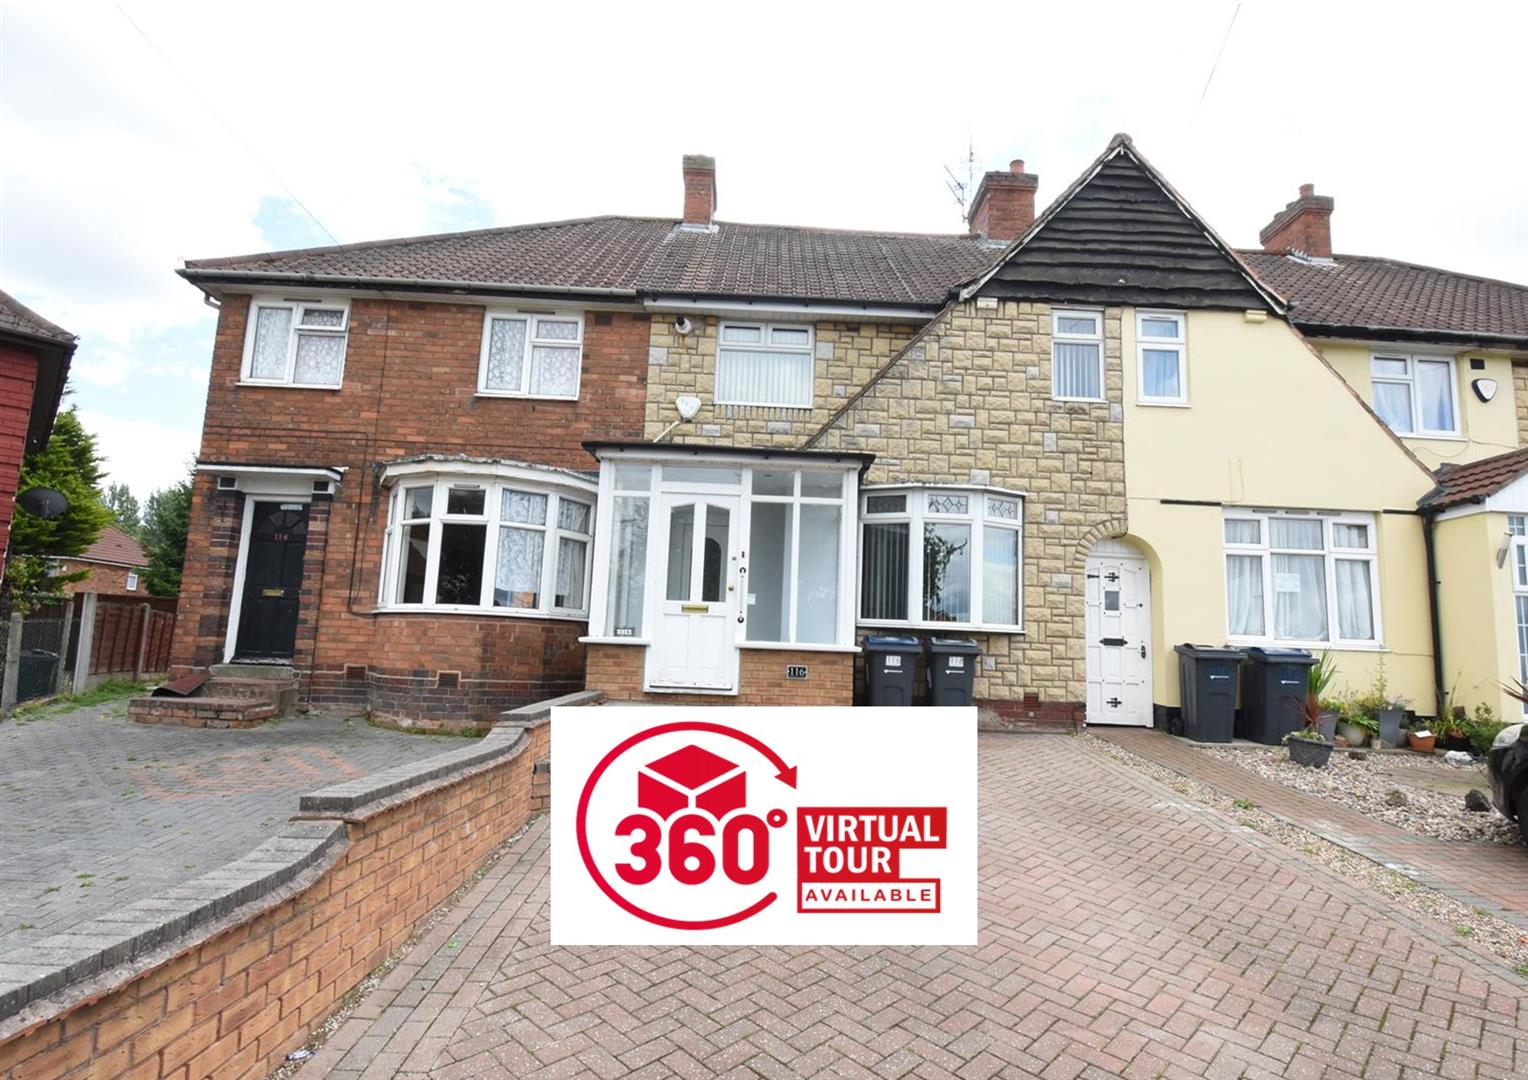 2 bed house for sale in Northleigh Road, Birmingham, B8